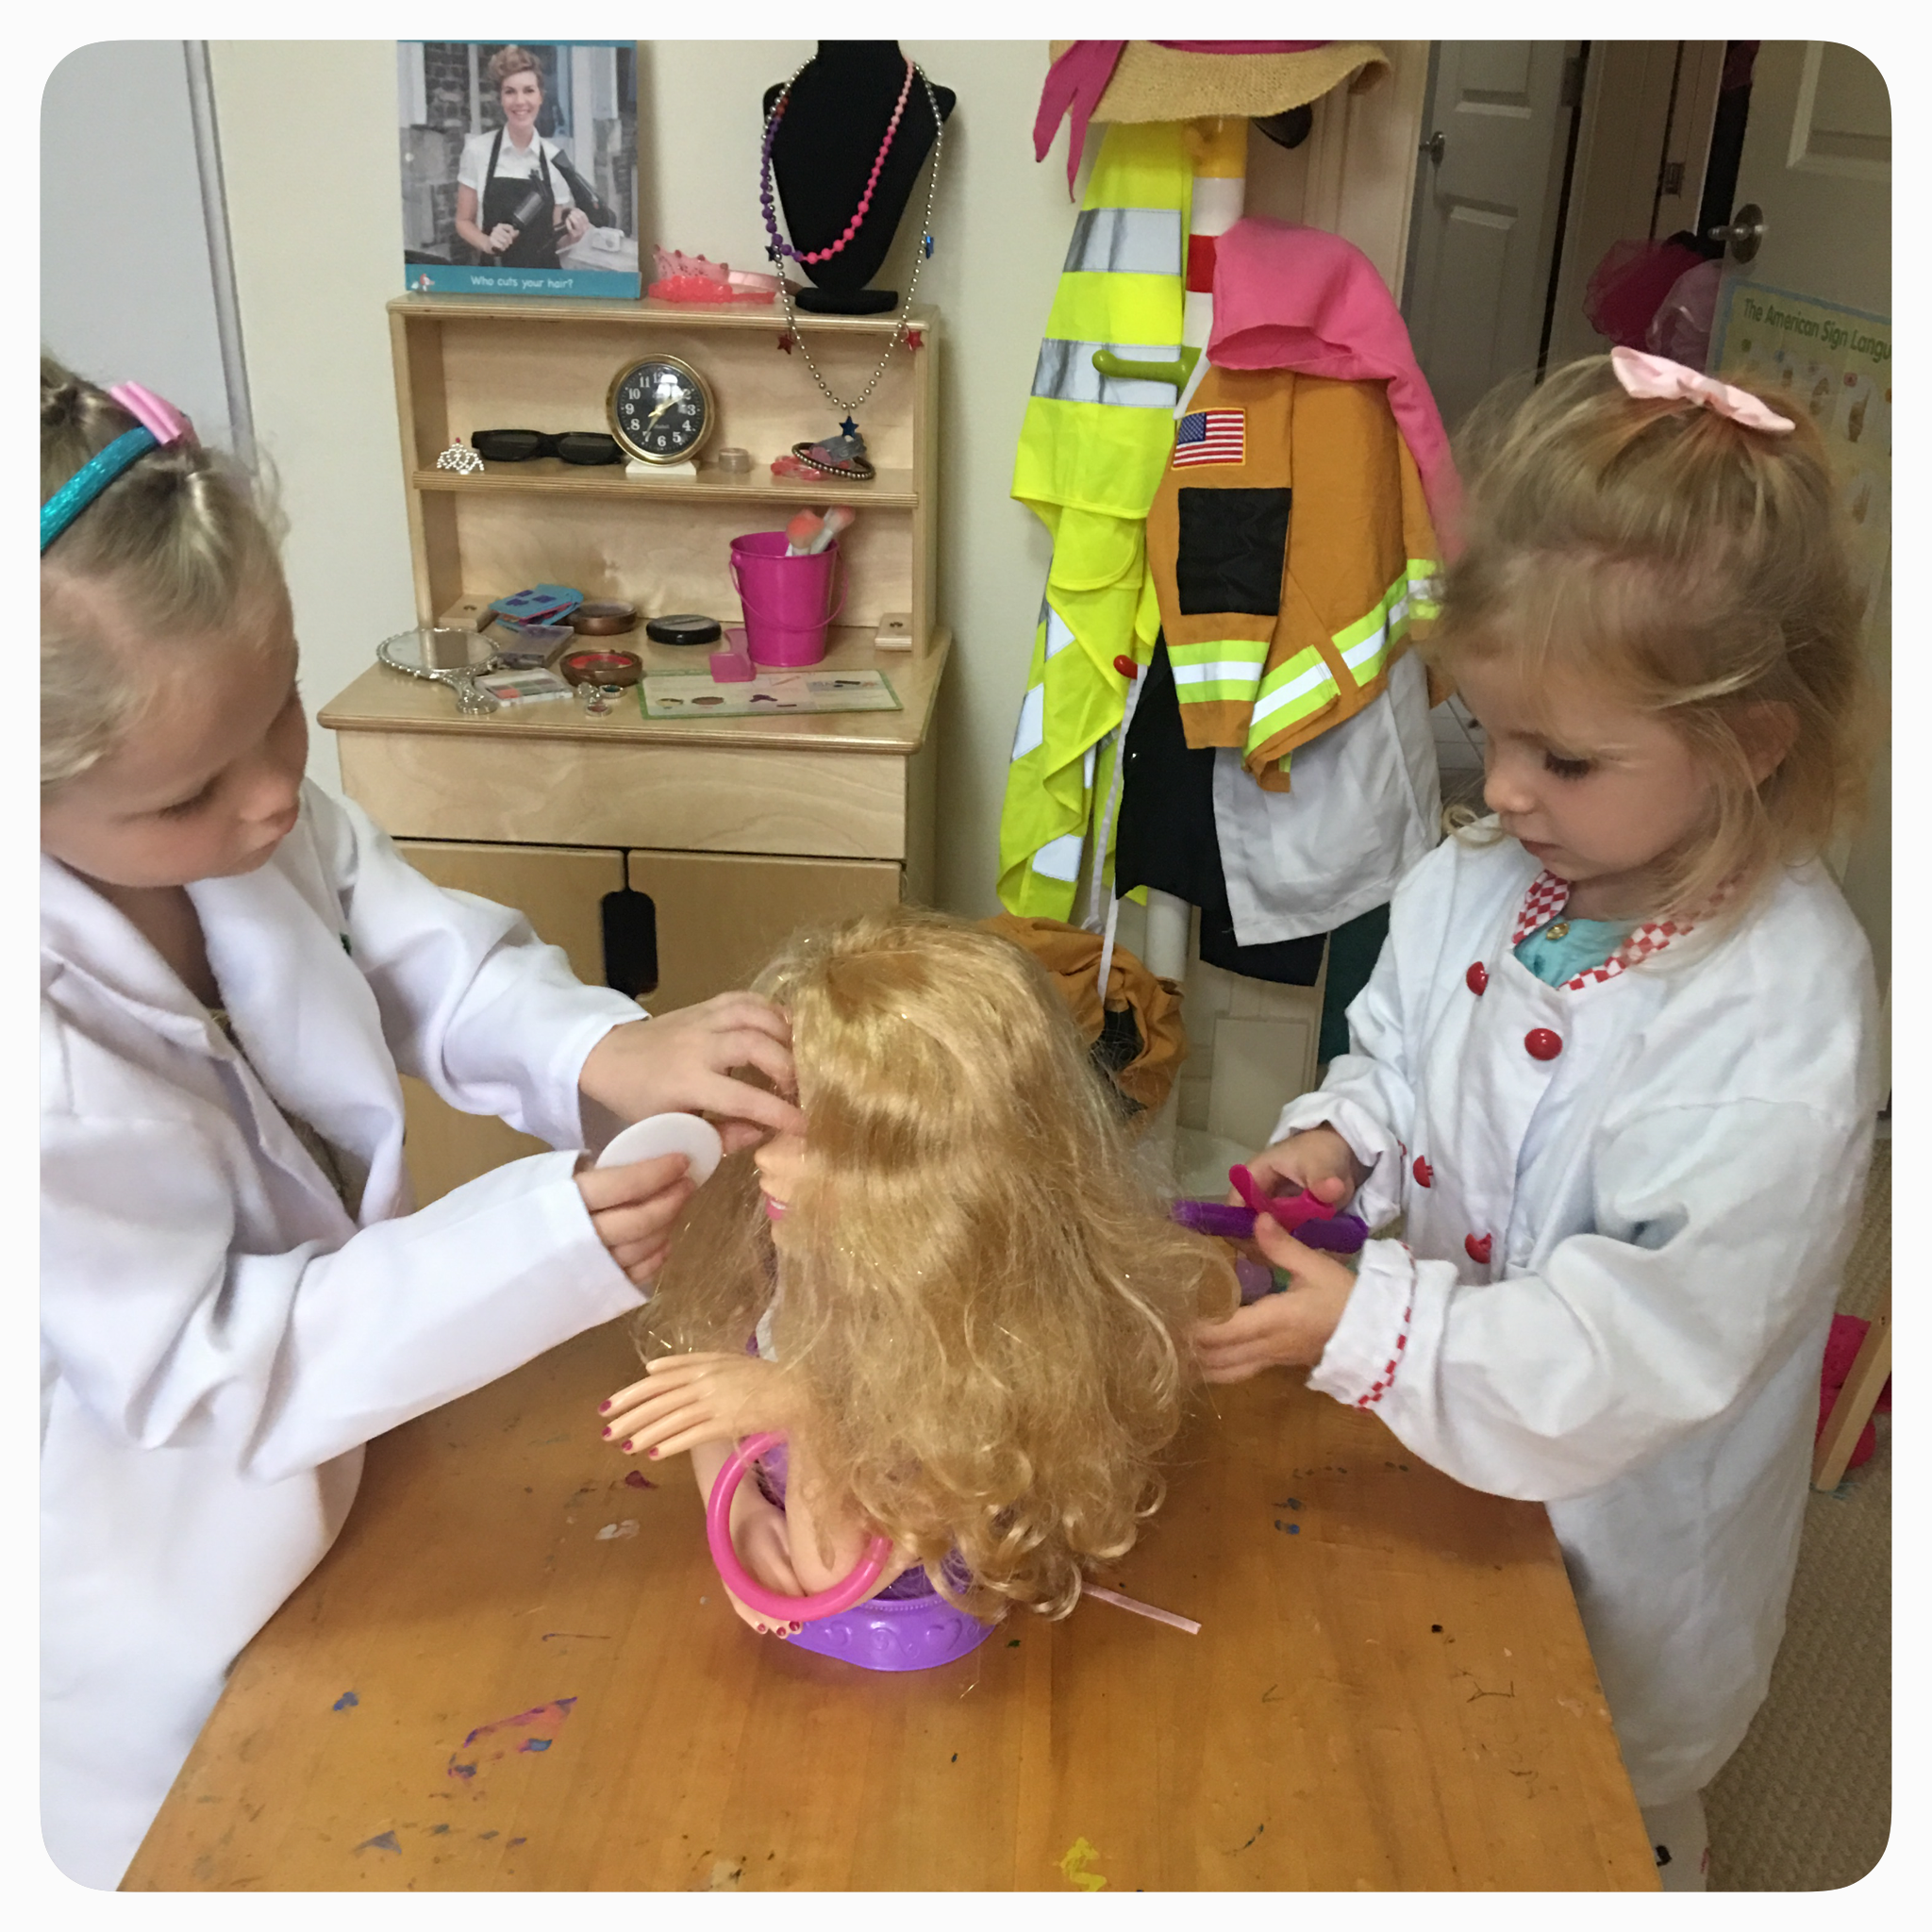 Beauty salon theme for your Dramatic Play center in preschool, pre-k, or early elementary school. Ideas for easy set-up, DIY makeup, hair styling.